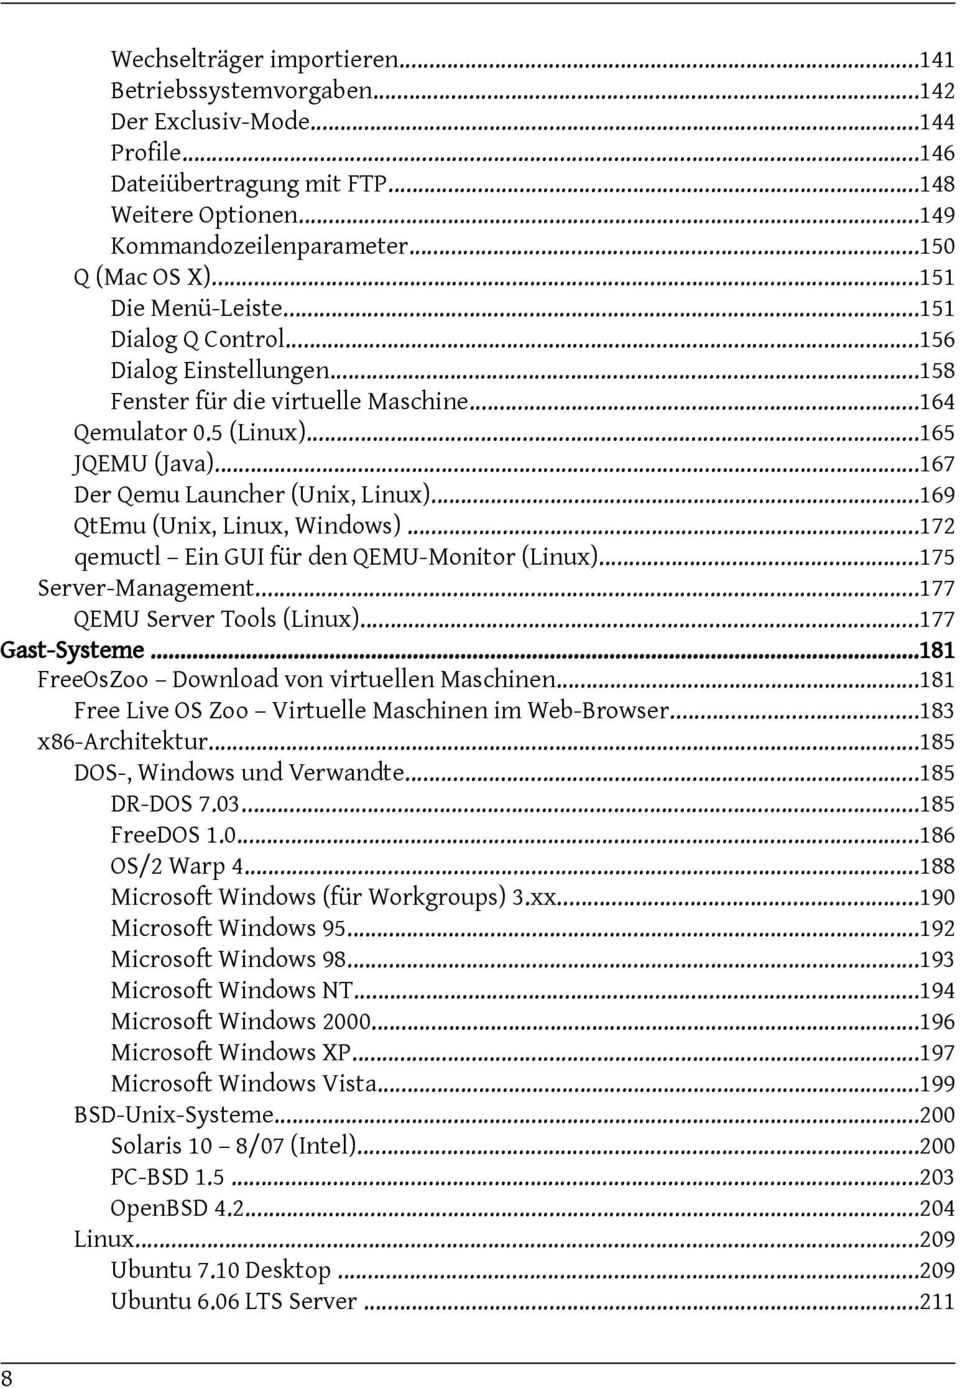 ..169 QtEmu (Unix, Linux, Windows)...172 qemuctl Ein GUI für den QEMU-Monitor (Linux)...175 Server-Management...177 QEMU Server Tools (Linux)...177 Gast-Systeme.